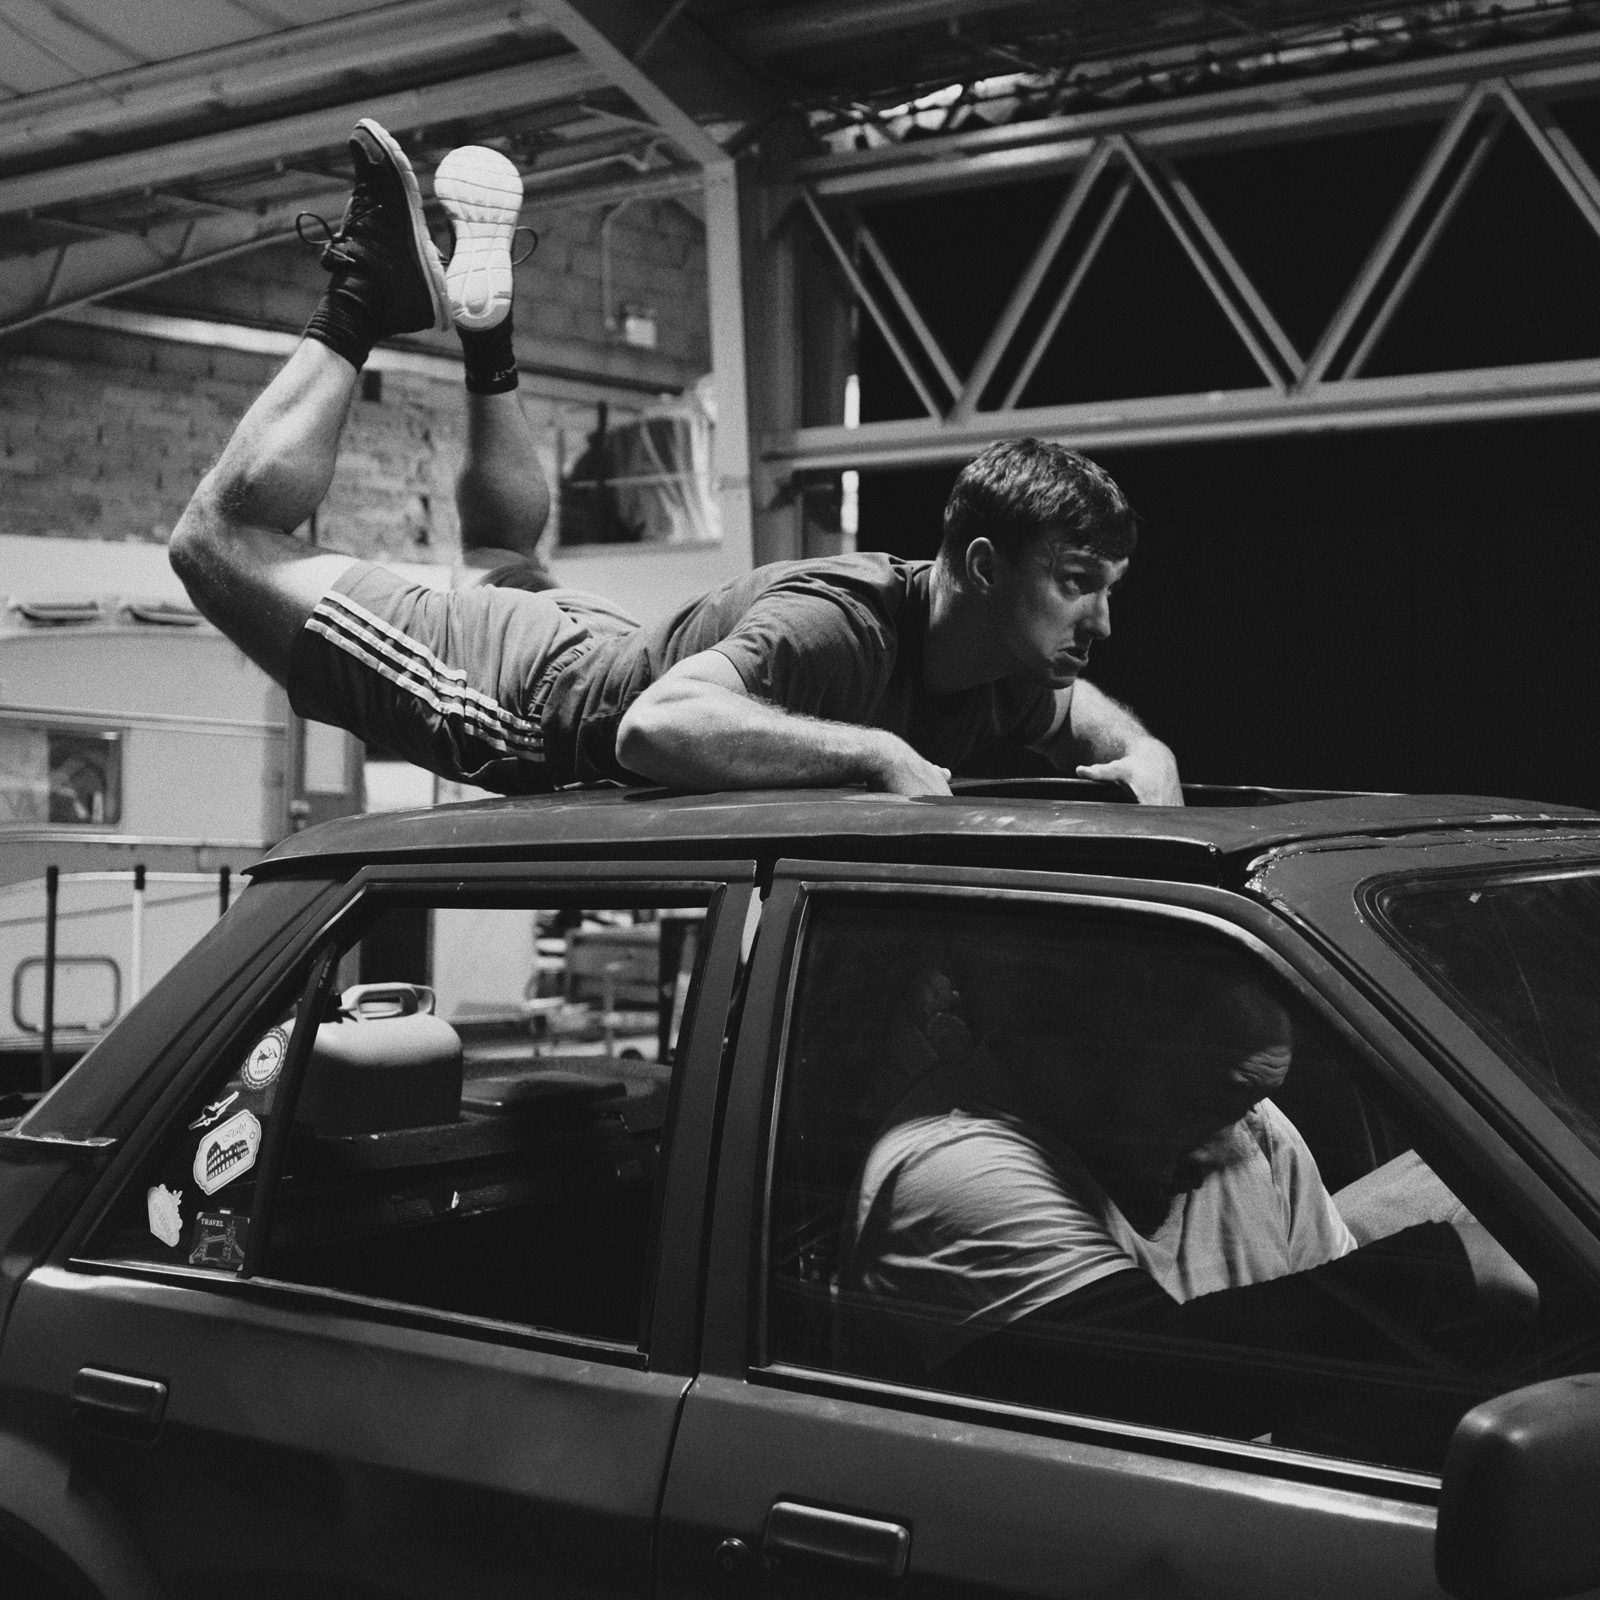 A dancer rehearsing on top of a car